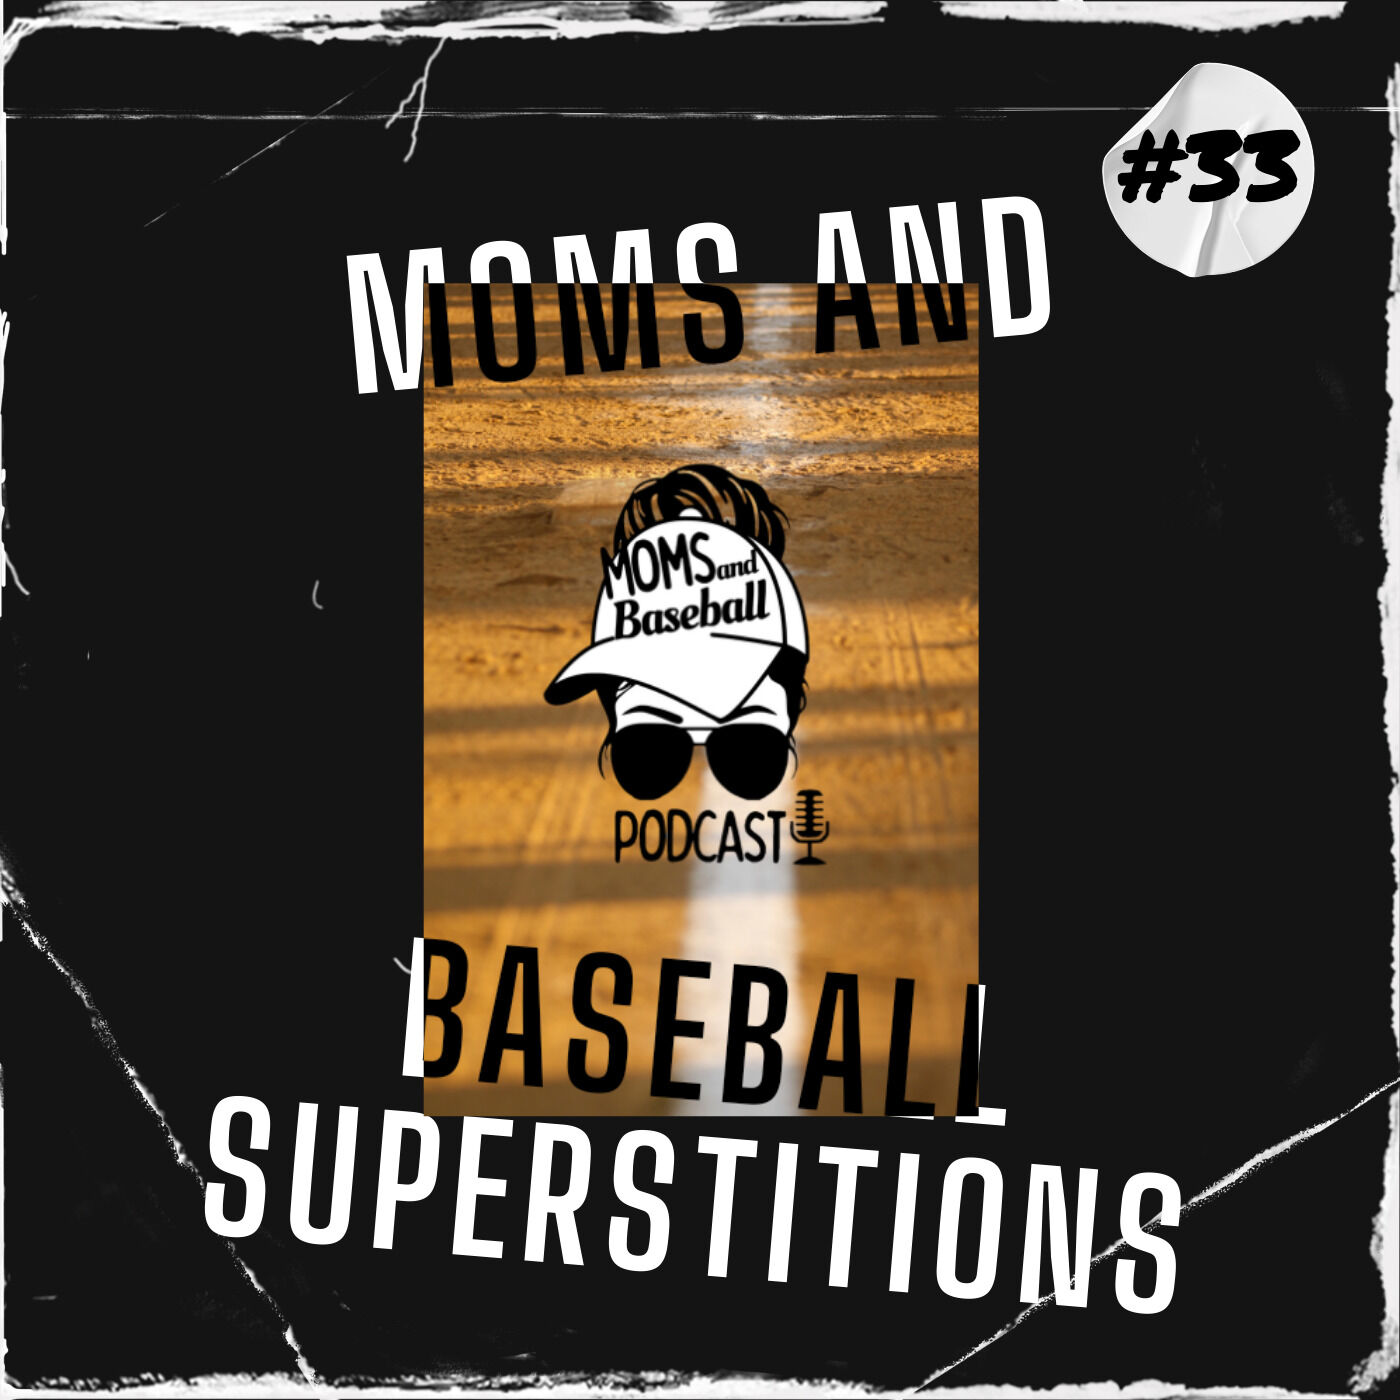 033: Moms and Baseball Superstitions